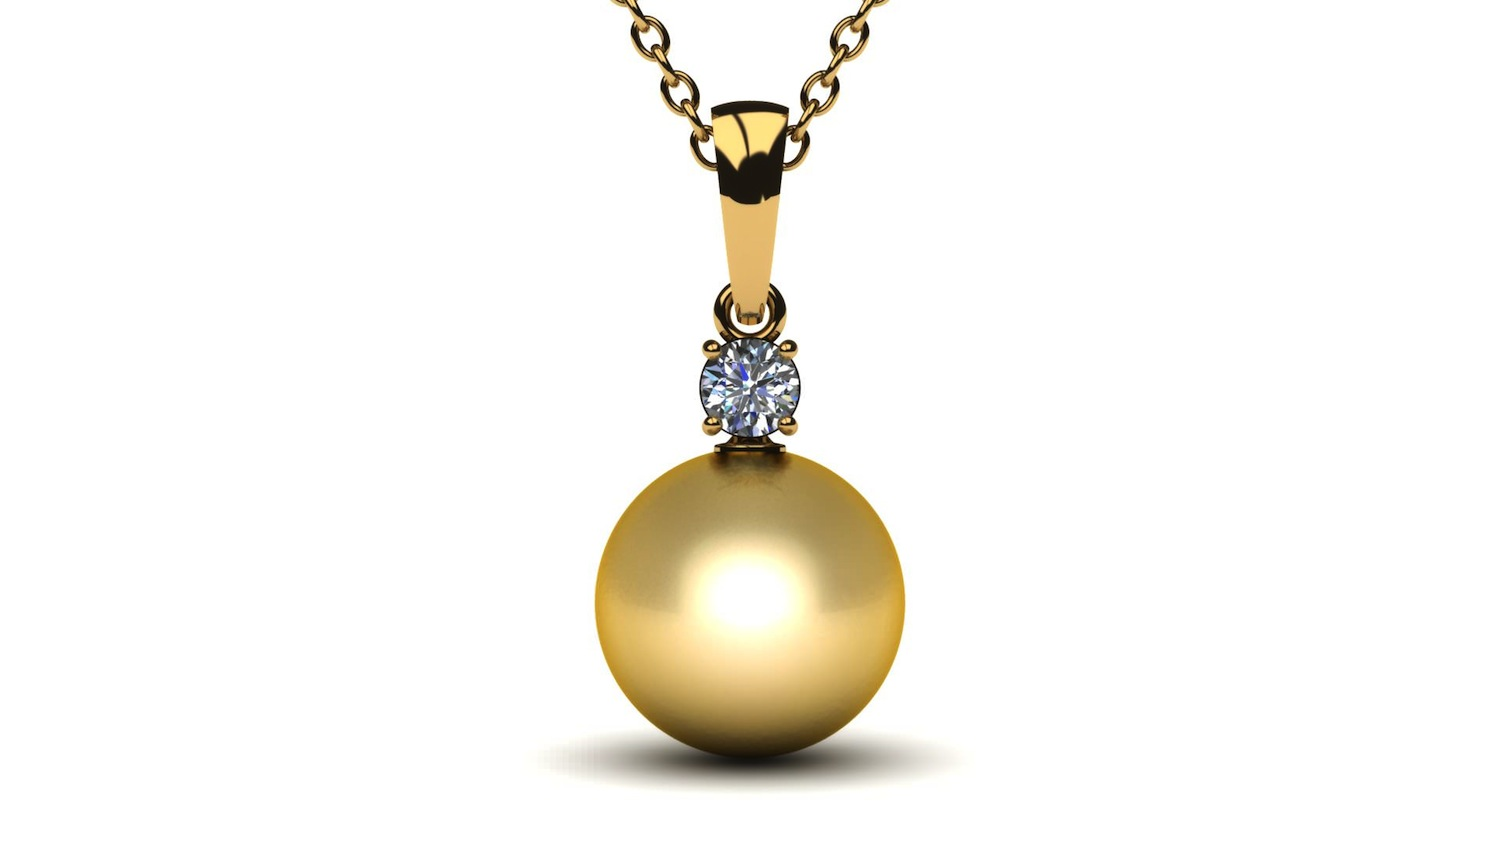 10mm Golden South Sea Pearl Pendant With 25 Carat Diamond